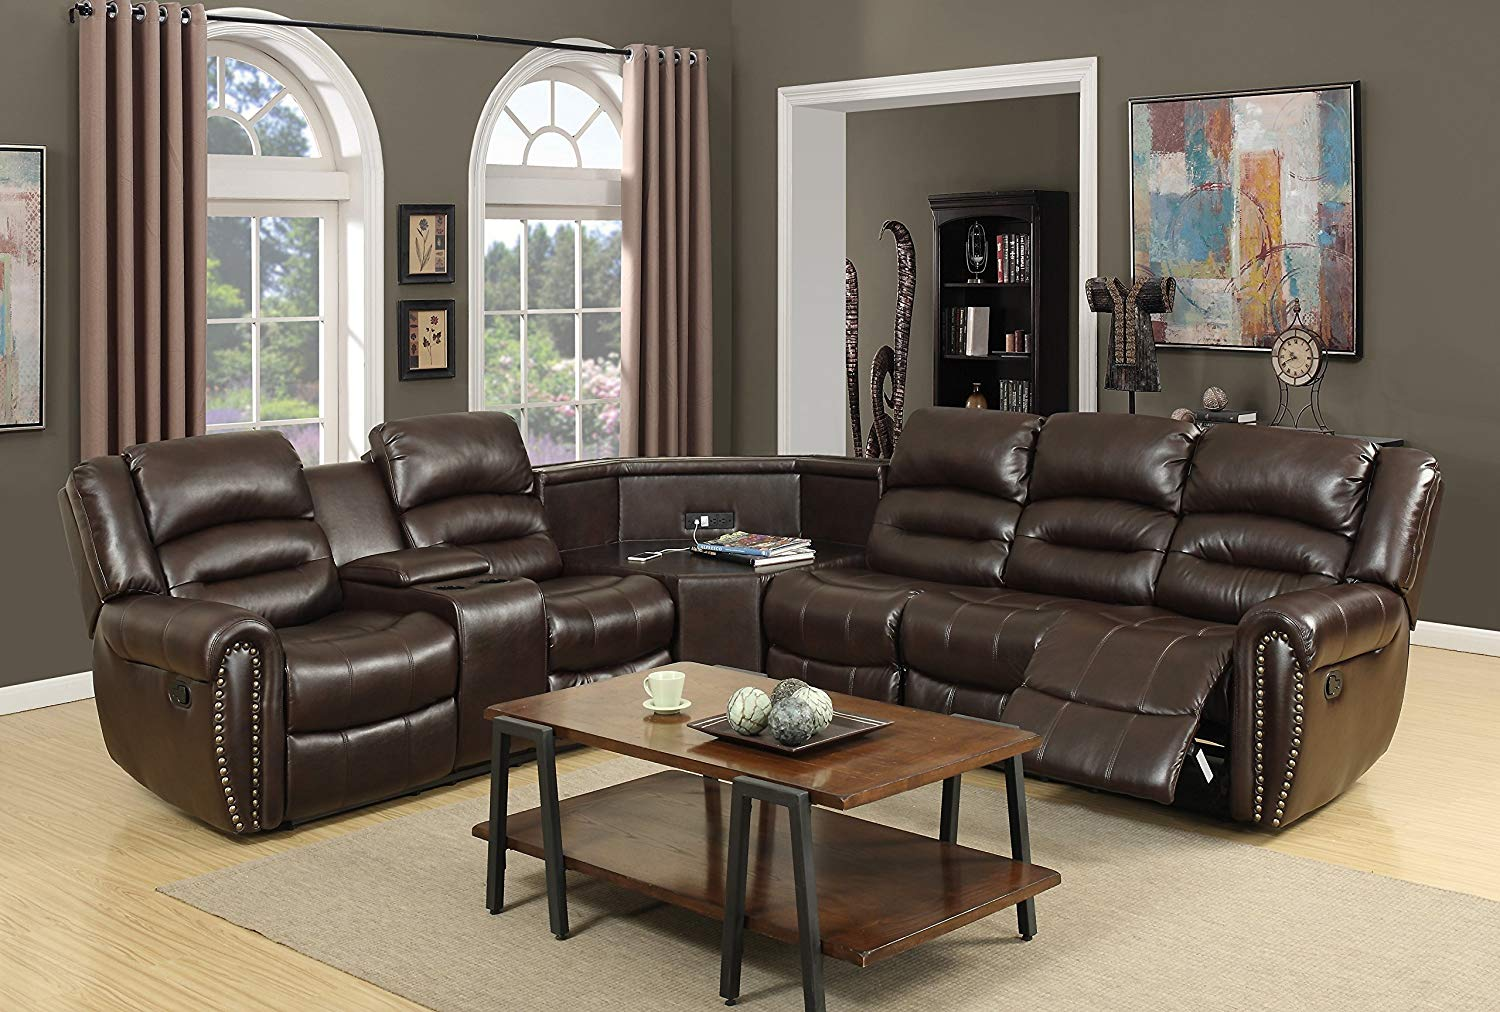 25 Cheap Recliner Sofa Sets That Are Available Online